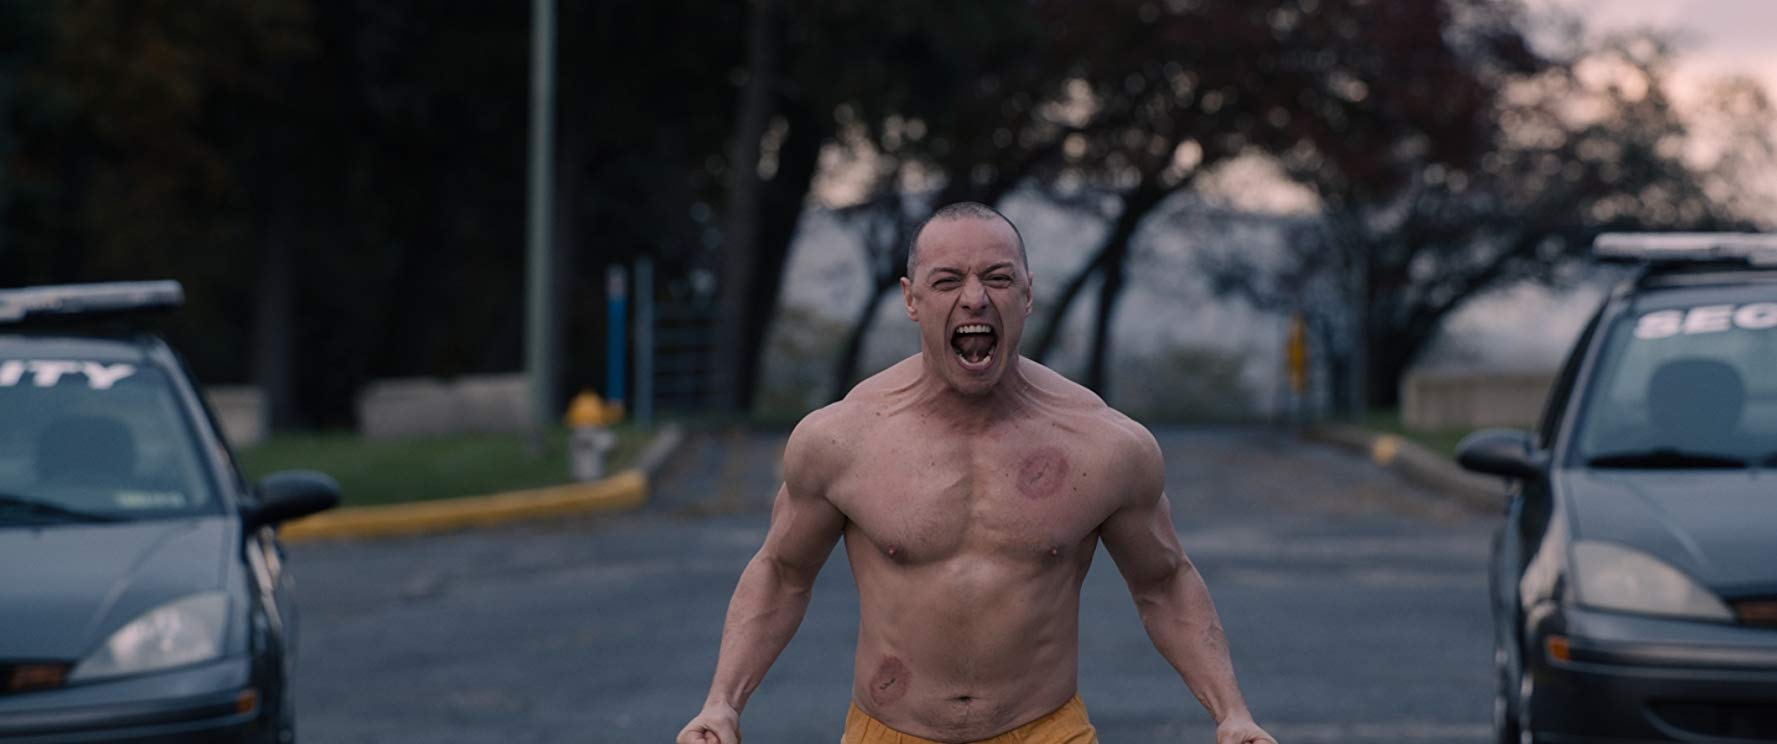 Glass, movie review, Lucas Mirabella